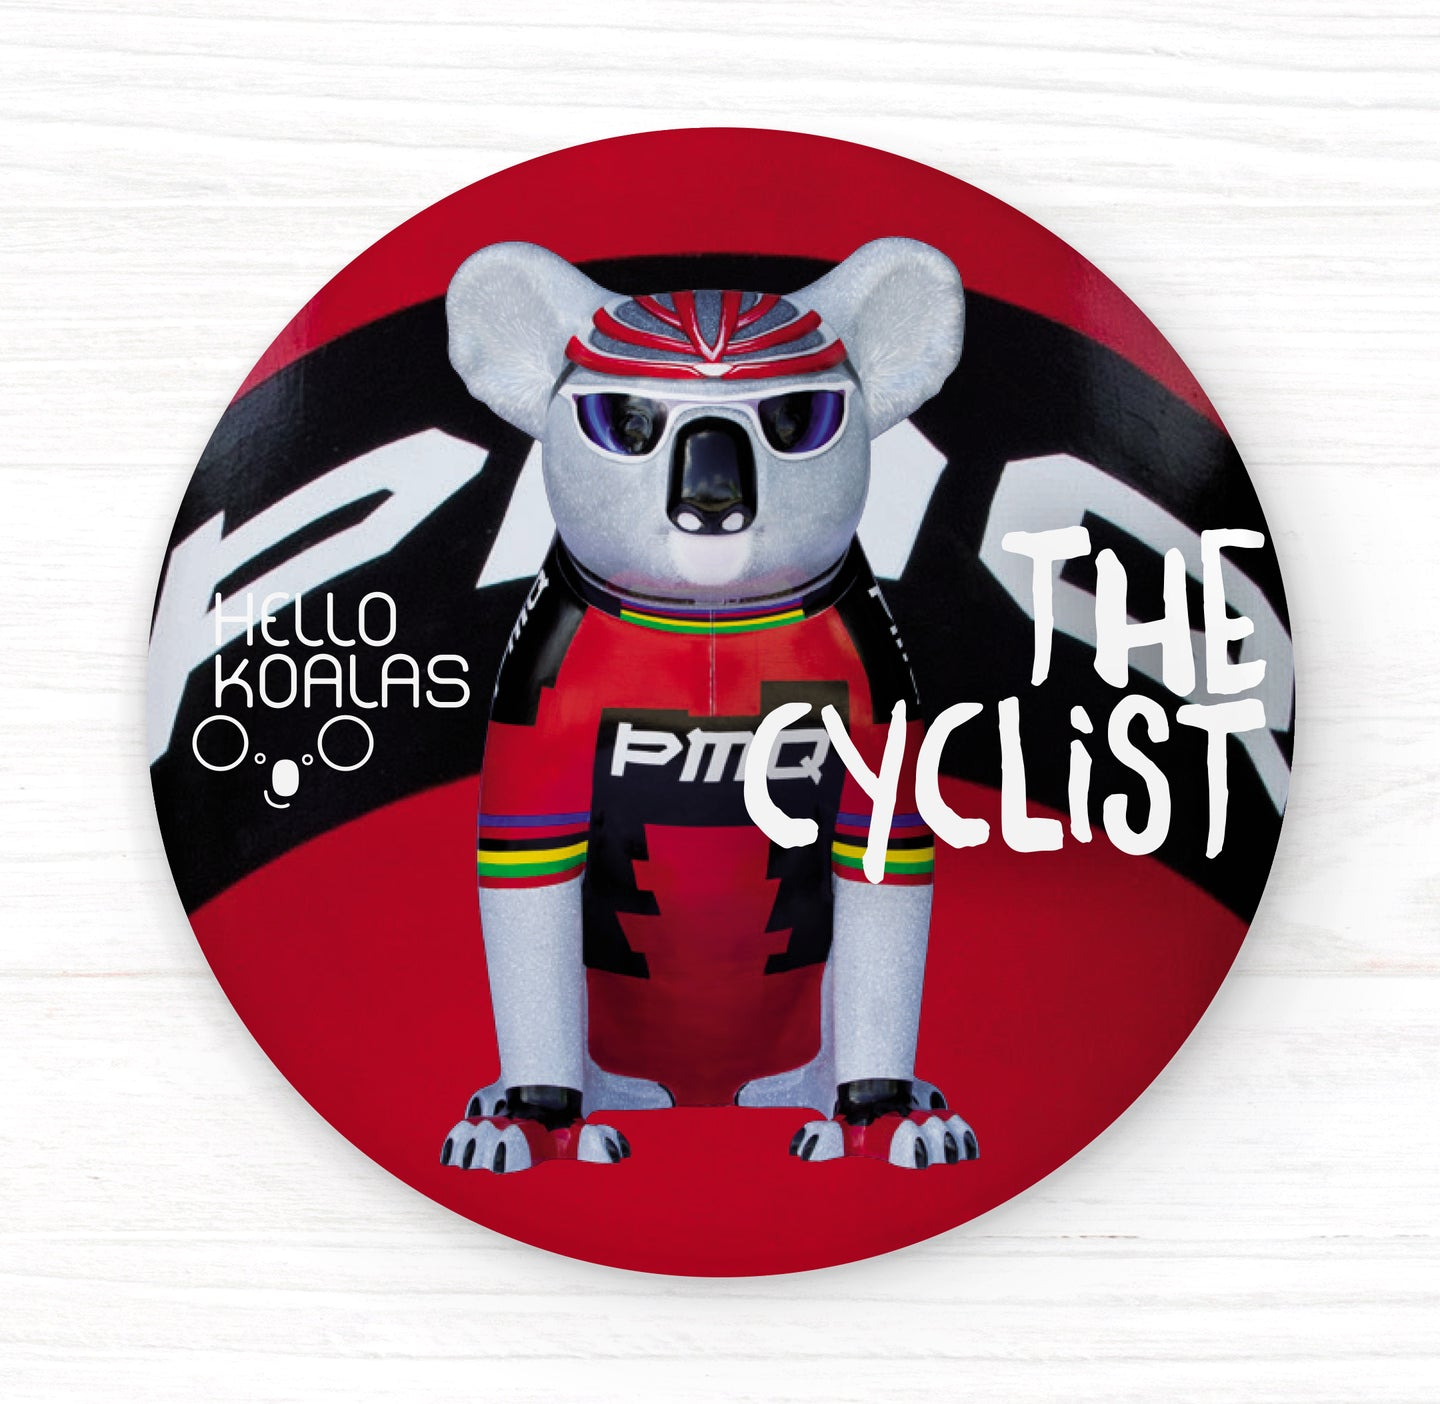 Hello Koalas The Cyclist Badge